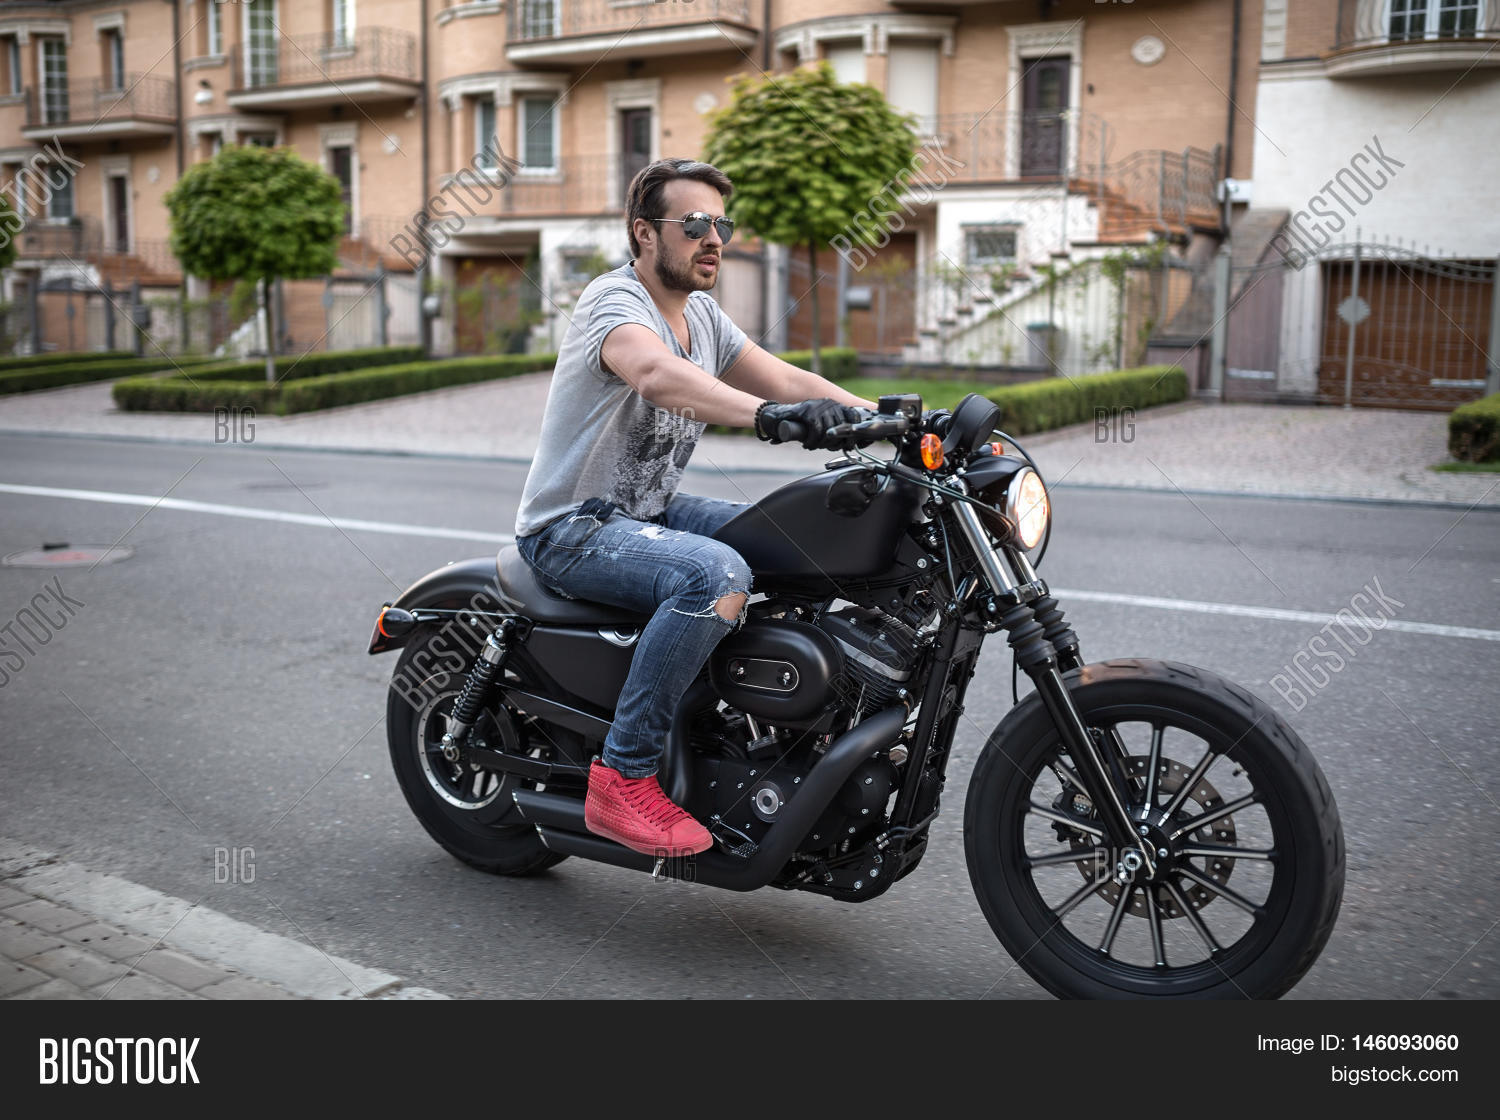 motorcycle background has  Handsome Man On Black Image